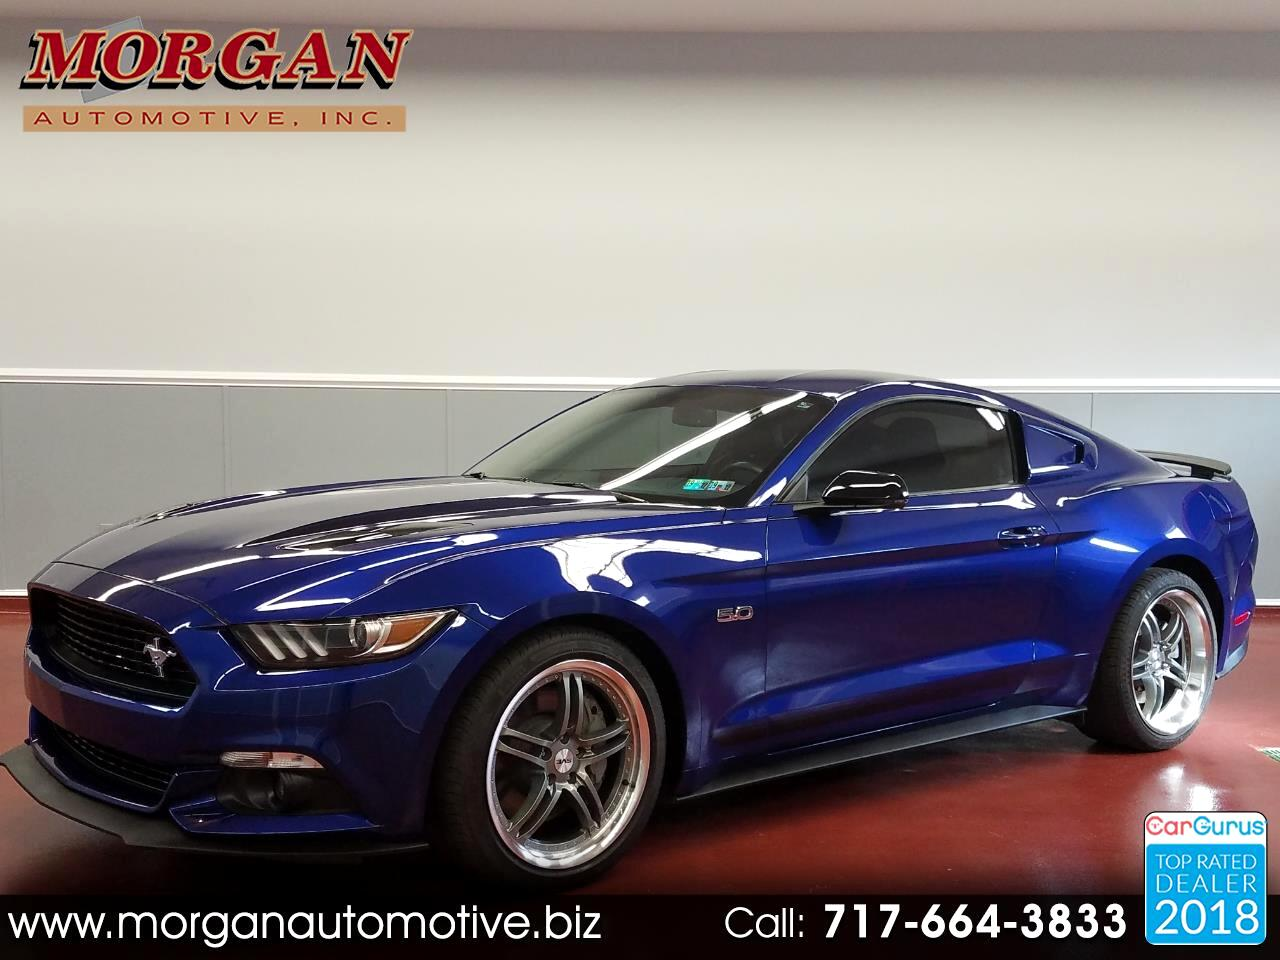 2016 Ford Mustang GT Premium Coupe California Special